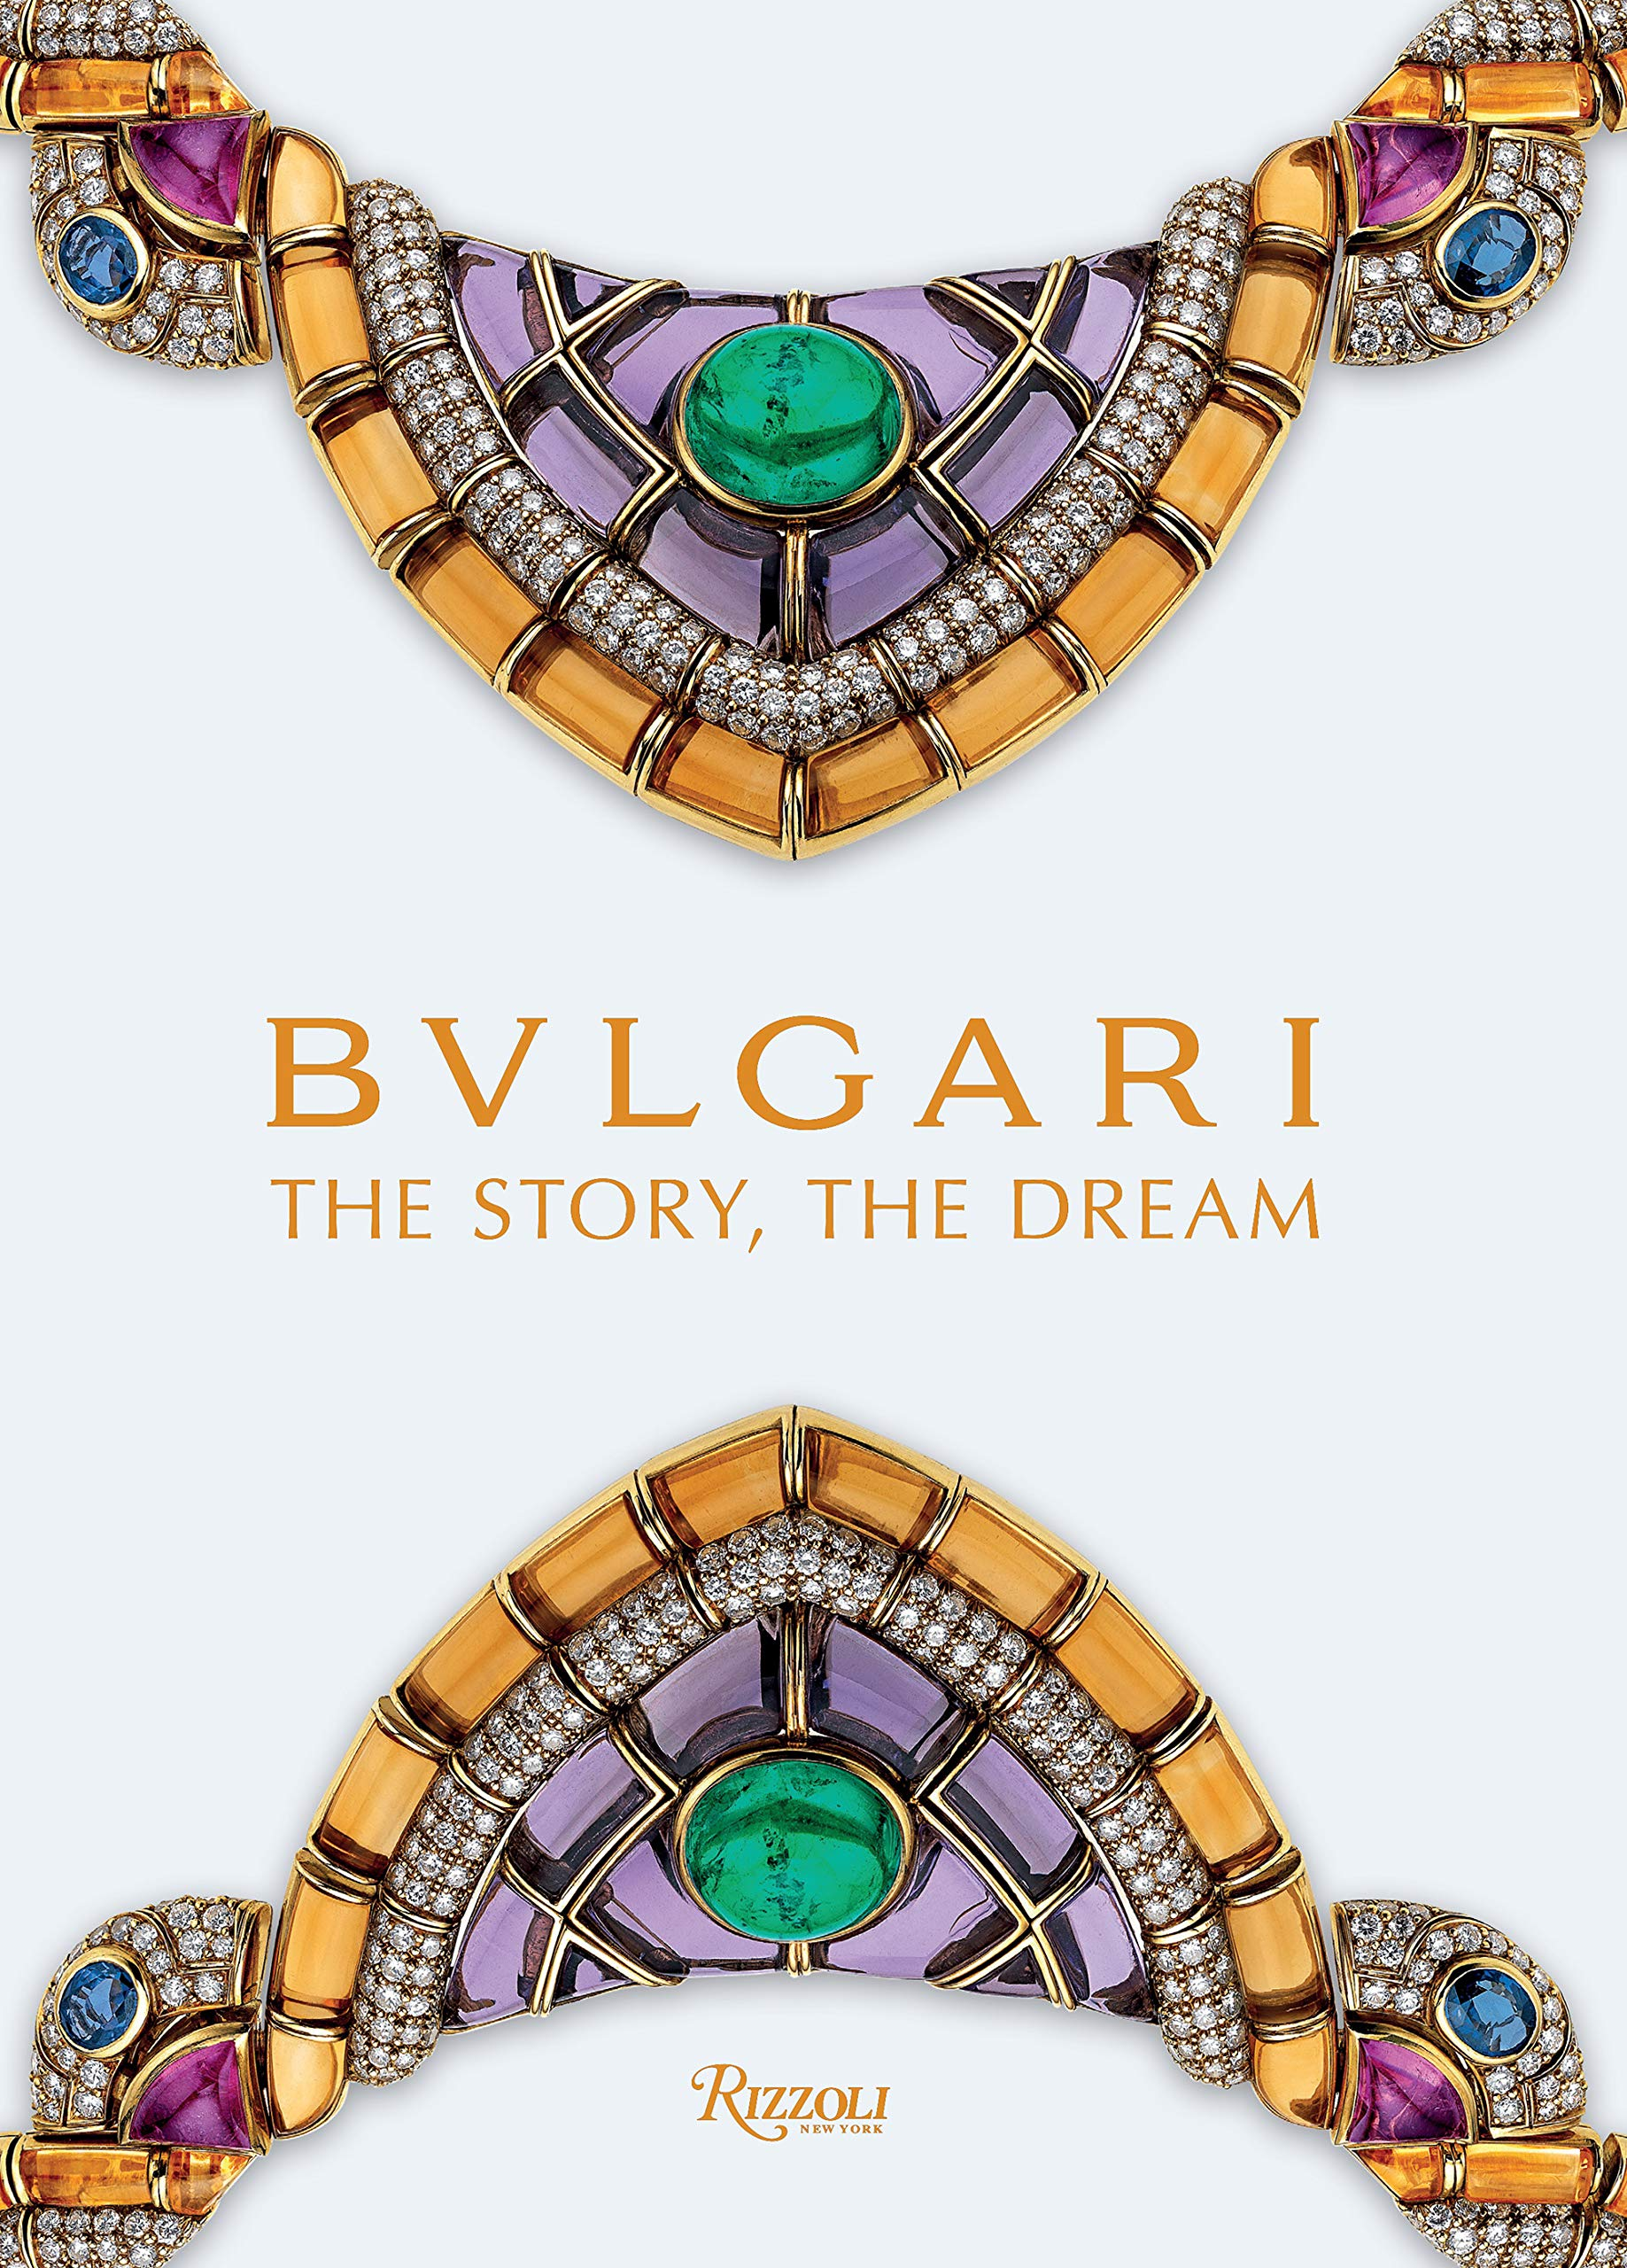 Bulgari the story the dream book